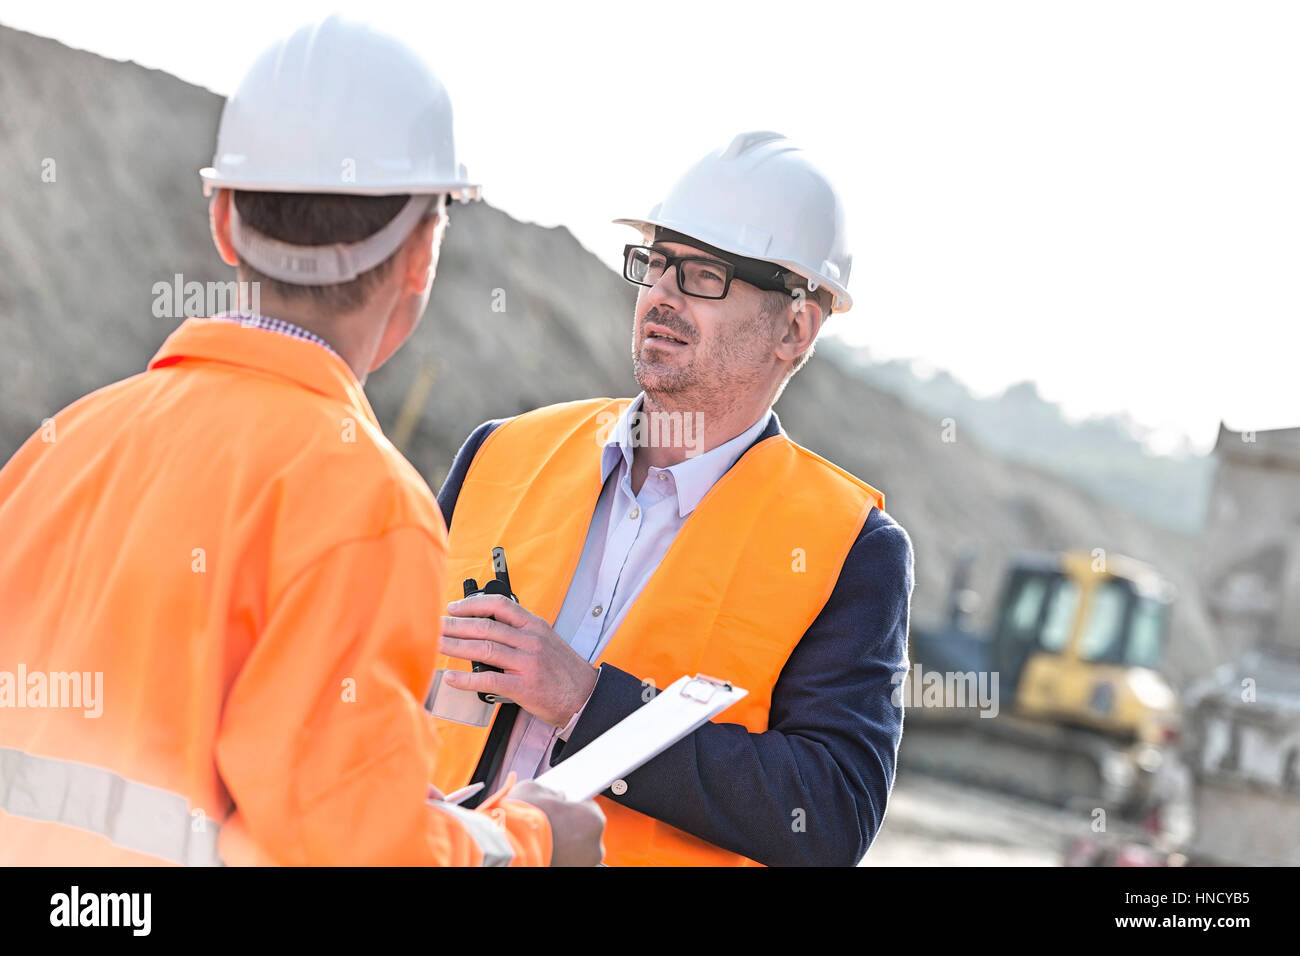 Architects discussing at construction site on sunny day - Stock Image